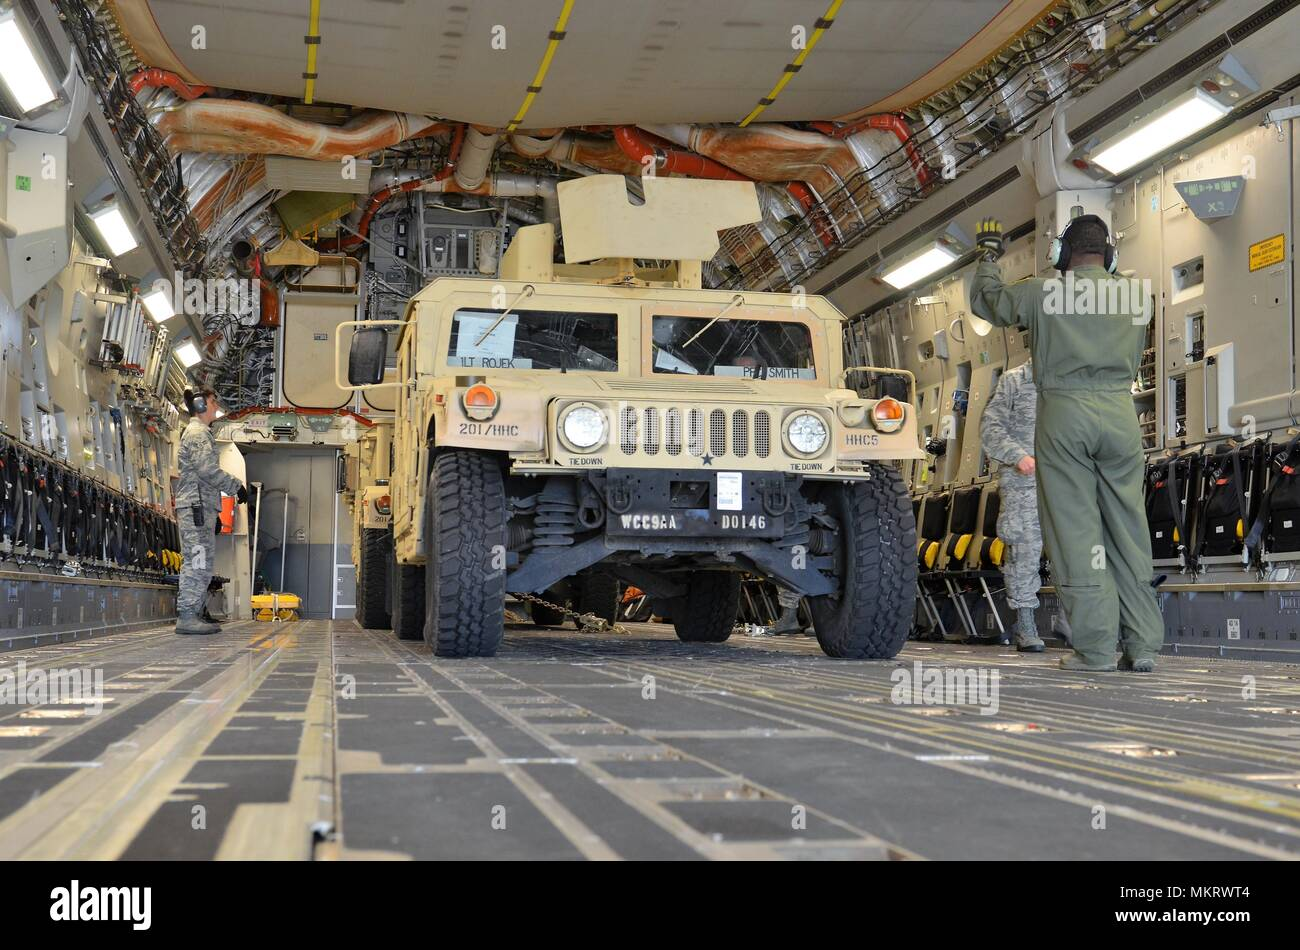 An Air Force loadmaster from the 62nd Airlift Wing at Joint Base Lewis-McChord, Wash. directs the loading of an M1151 Humvee (HMMWV) onto a C-17 Globemaster III May 7, 2018, May 7, 2018. The M1151 Enhanced Armament Carrier is an improved version of the standard HMMWV used to move troops. The movement is part of a field training exercise being conducted by the 201st Expeditionary Military Intelligence Brigade and is designed to provide more realistic load training for the Air Force and more airlift equipment preparation training for the Army. (U.S. Army photo by Staff Sgt. Chris McCullough). () - Stock Image